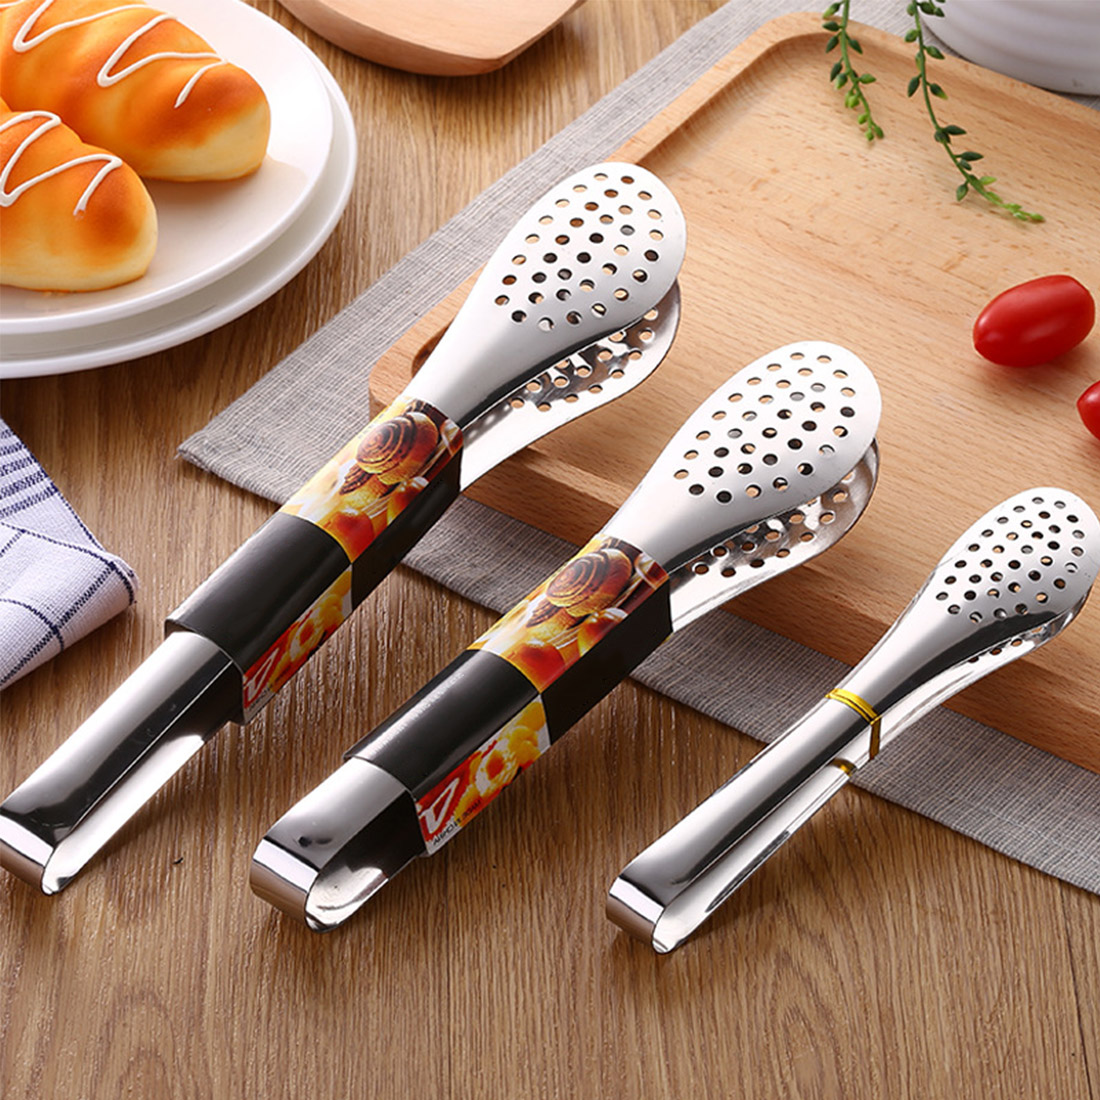 Stainless Steel Kitchen Cooking Tong BBQ Food Salad Clamp Clip Serving Utensil